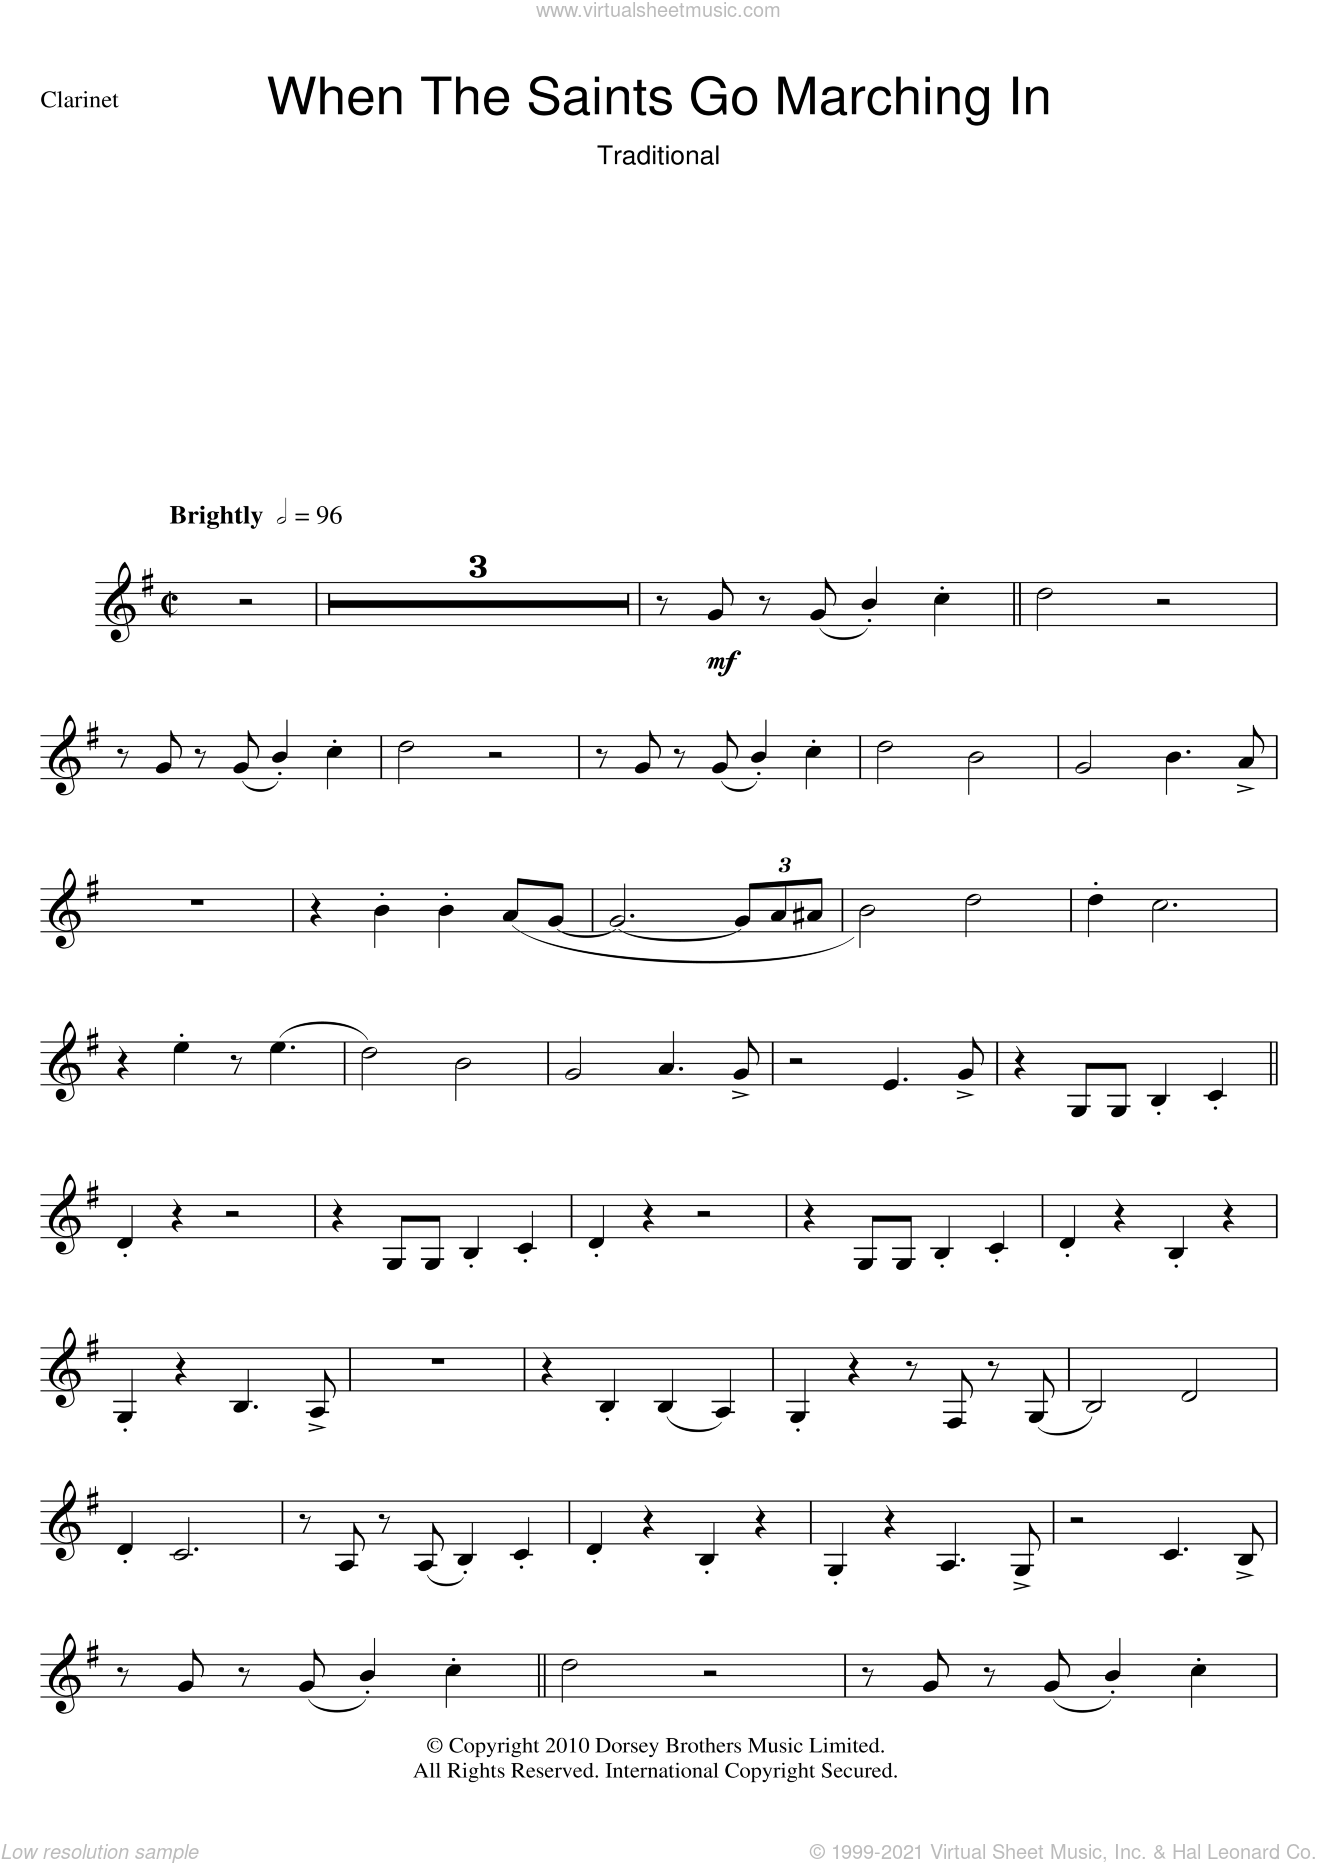 When The Saints Go Marching In sheet music for clarinet solo. Score Image Preview.